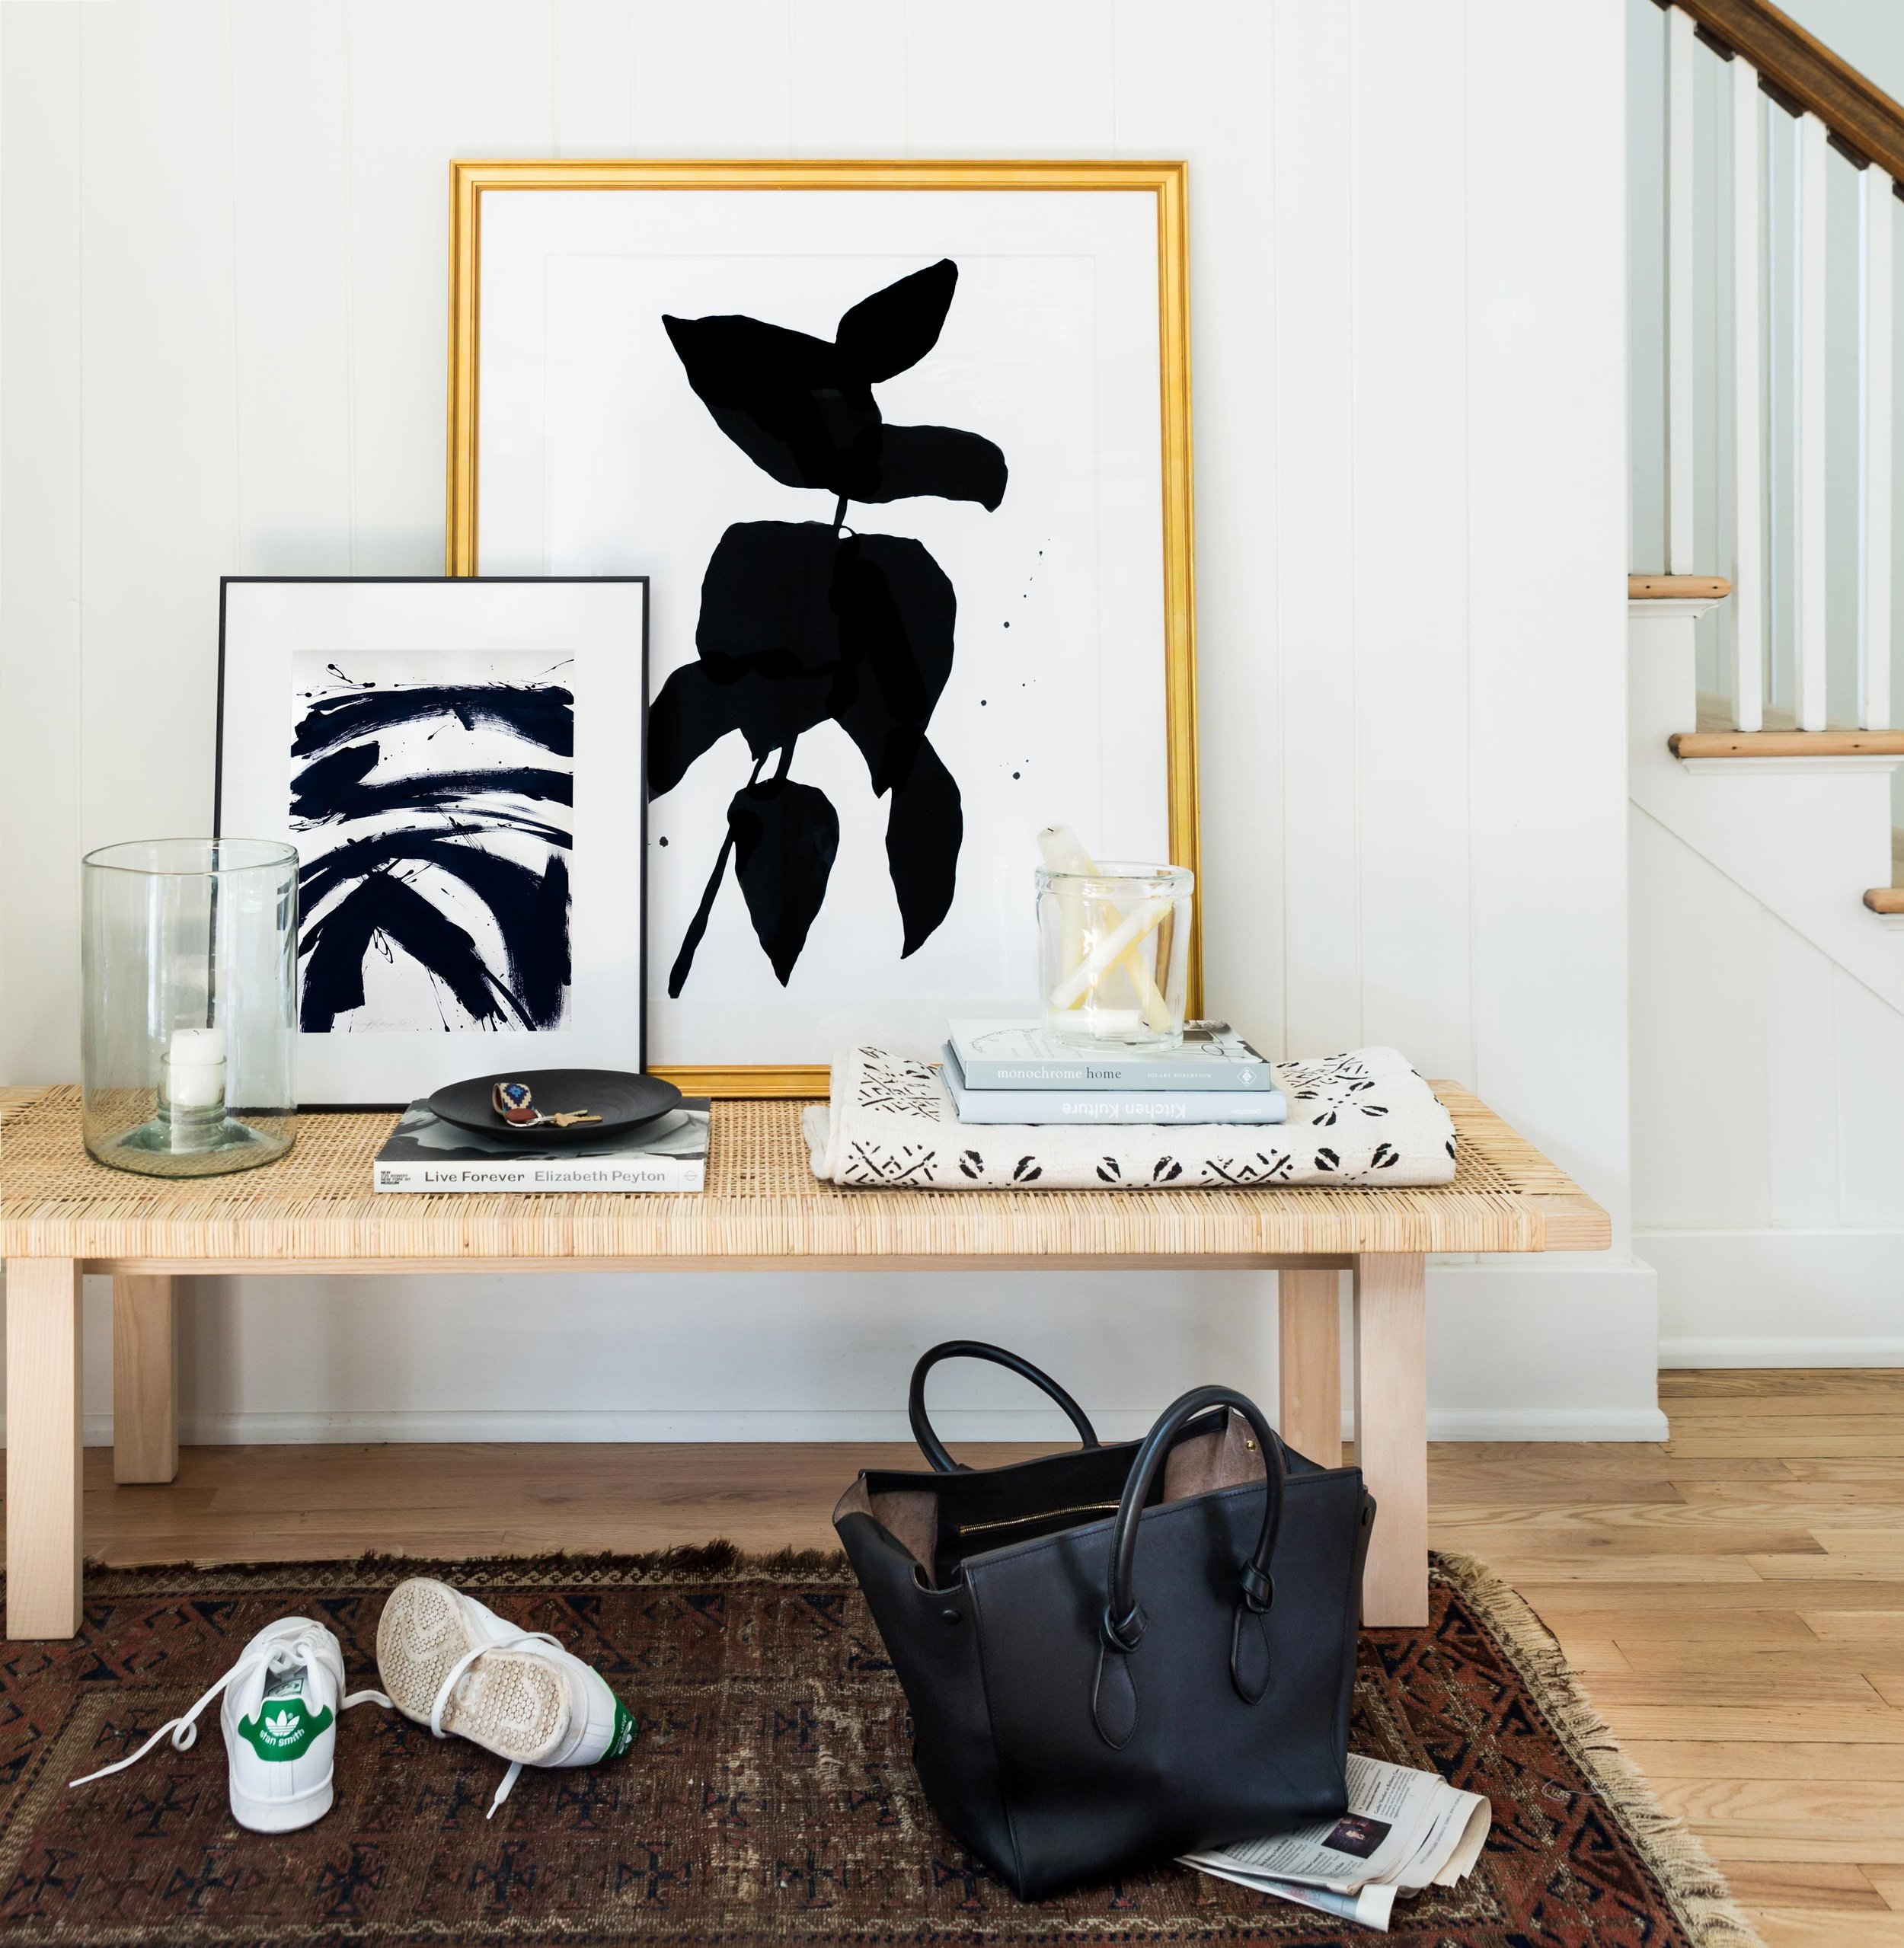 B + W #3  by  Jill Sykes  (left) and  Long Branch One  by  Kate Roebuck  (right).Photo by  Marta X. Perez  for Artfully Walls.